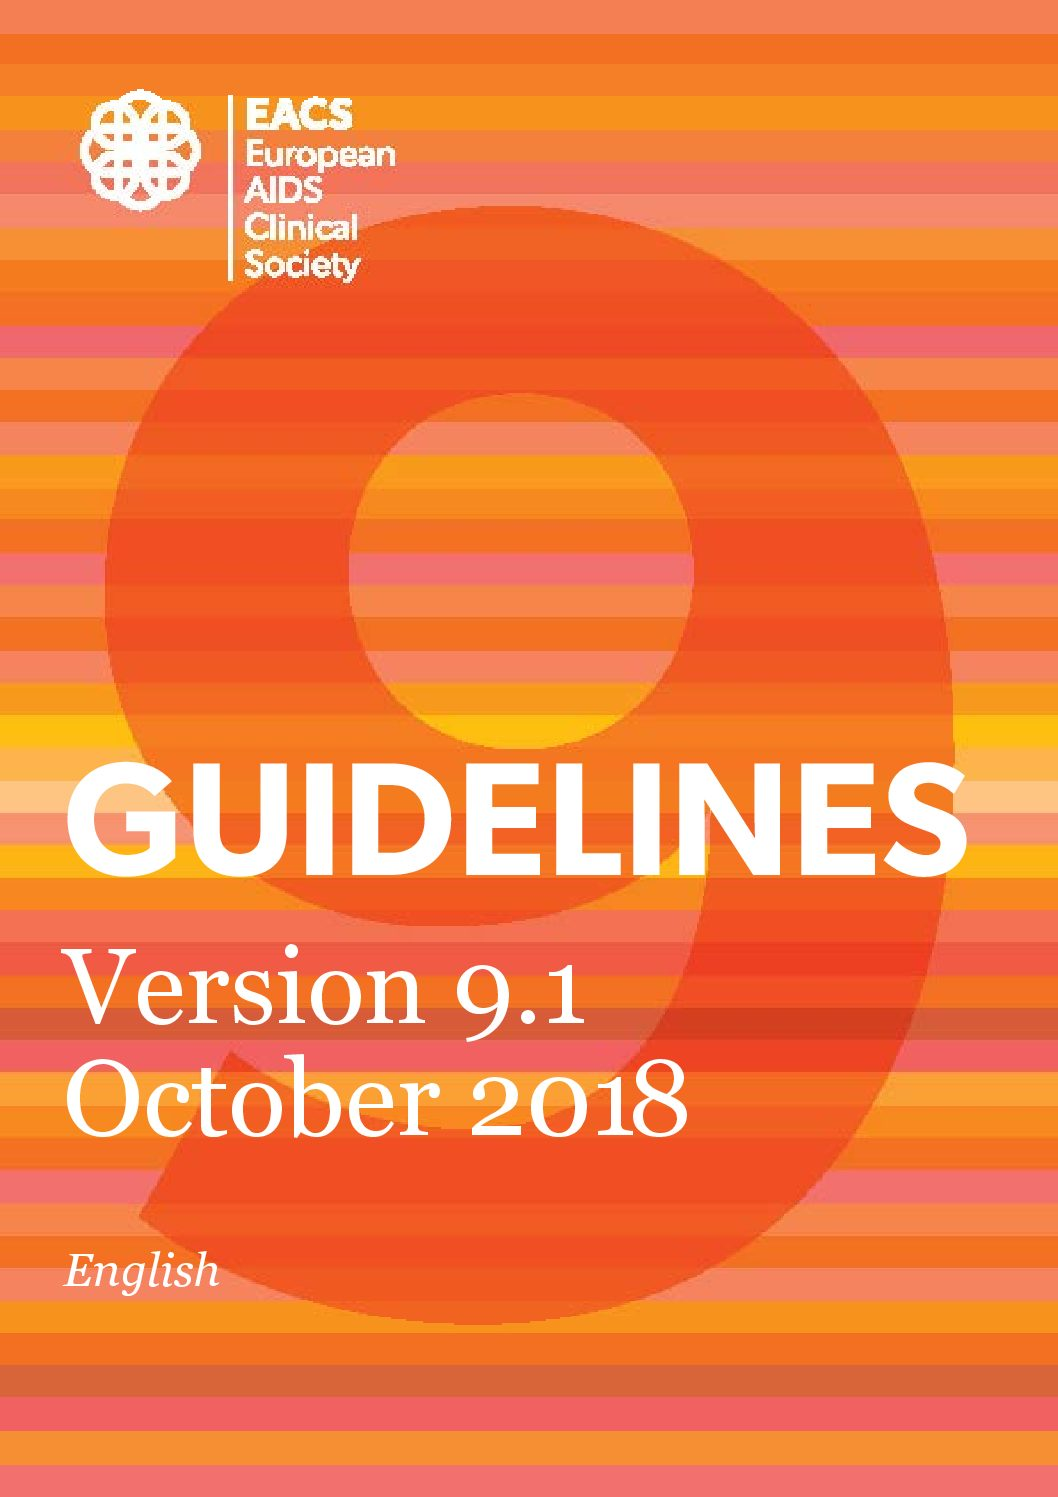 EACS Guidelines. Version 9.1. October 2018